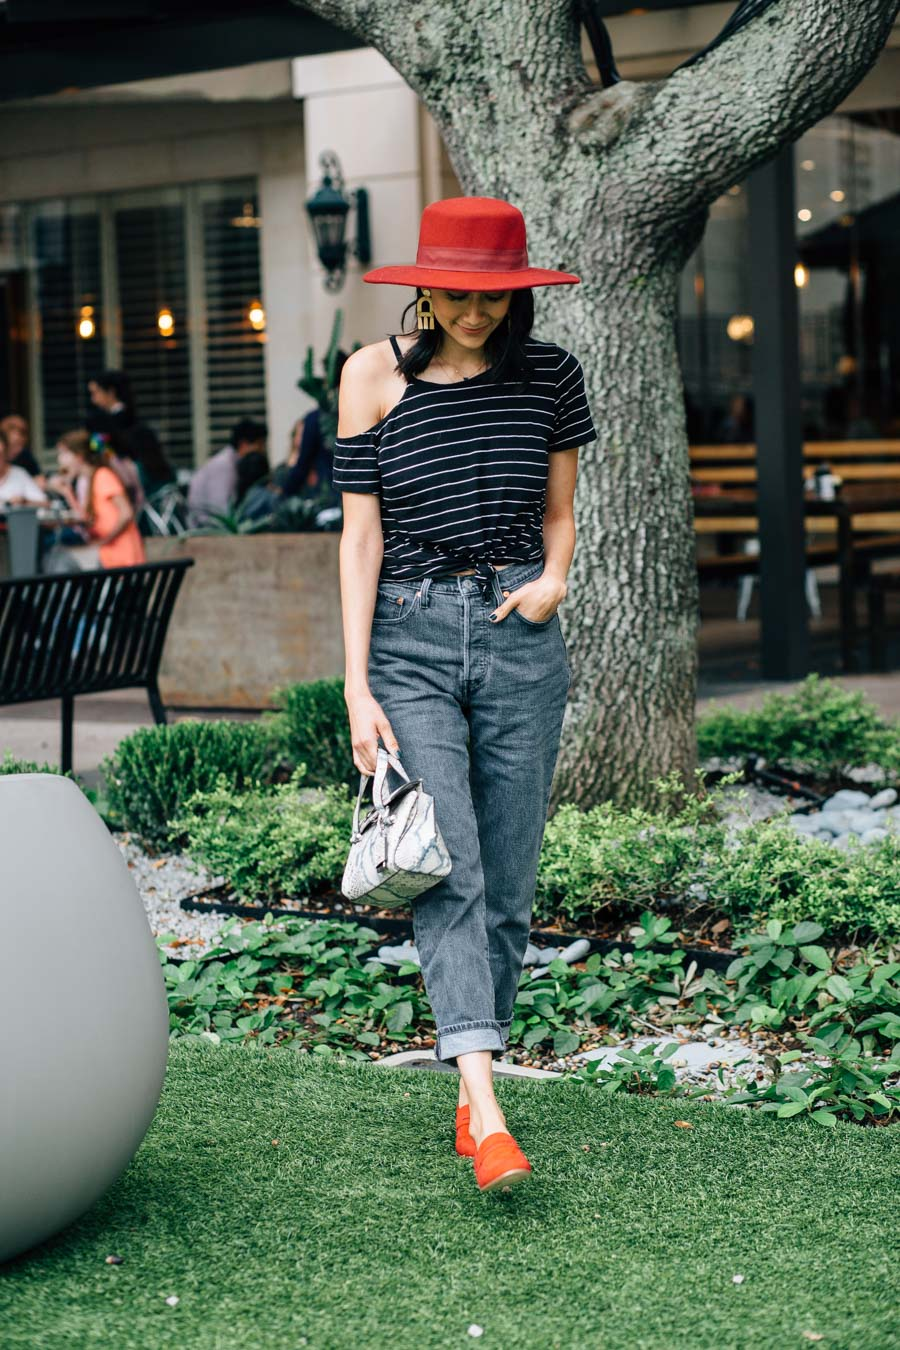 Lilly Beltran wearing Levi's 501 mom jeans with a black striped t-shirt and red loafers